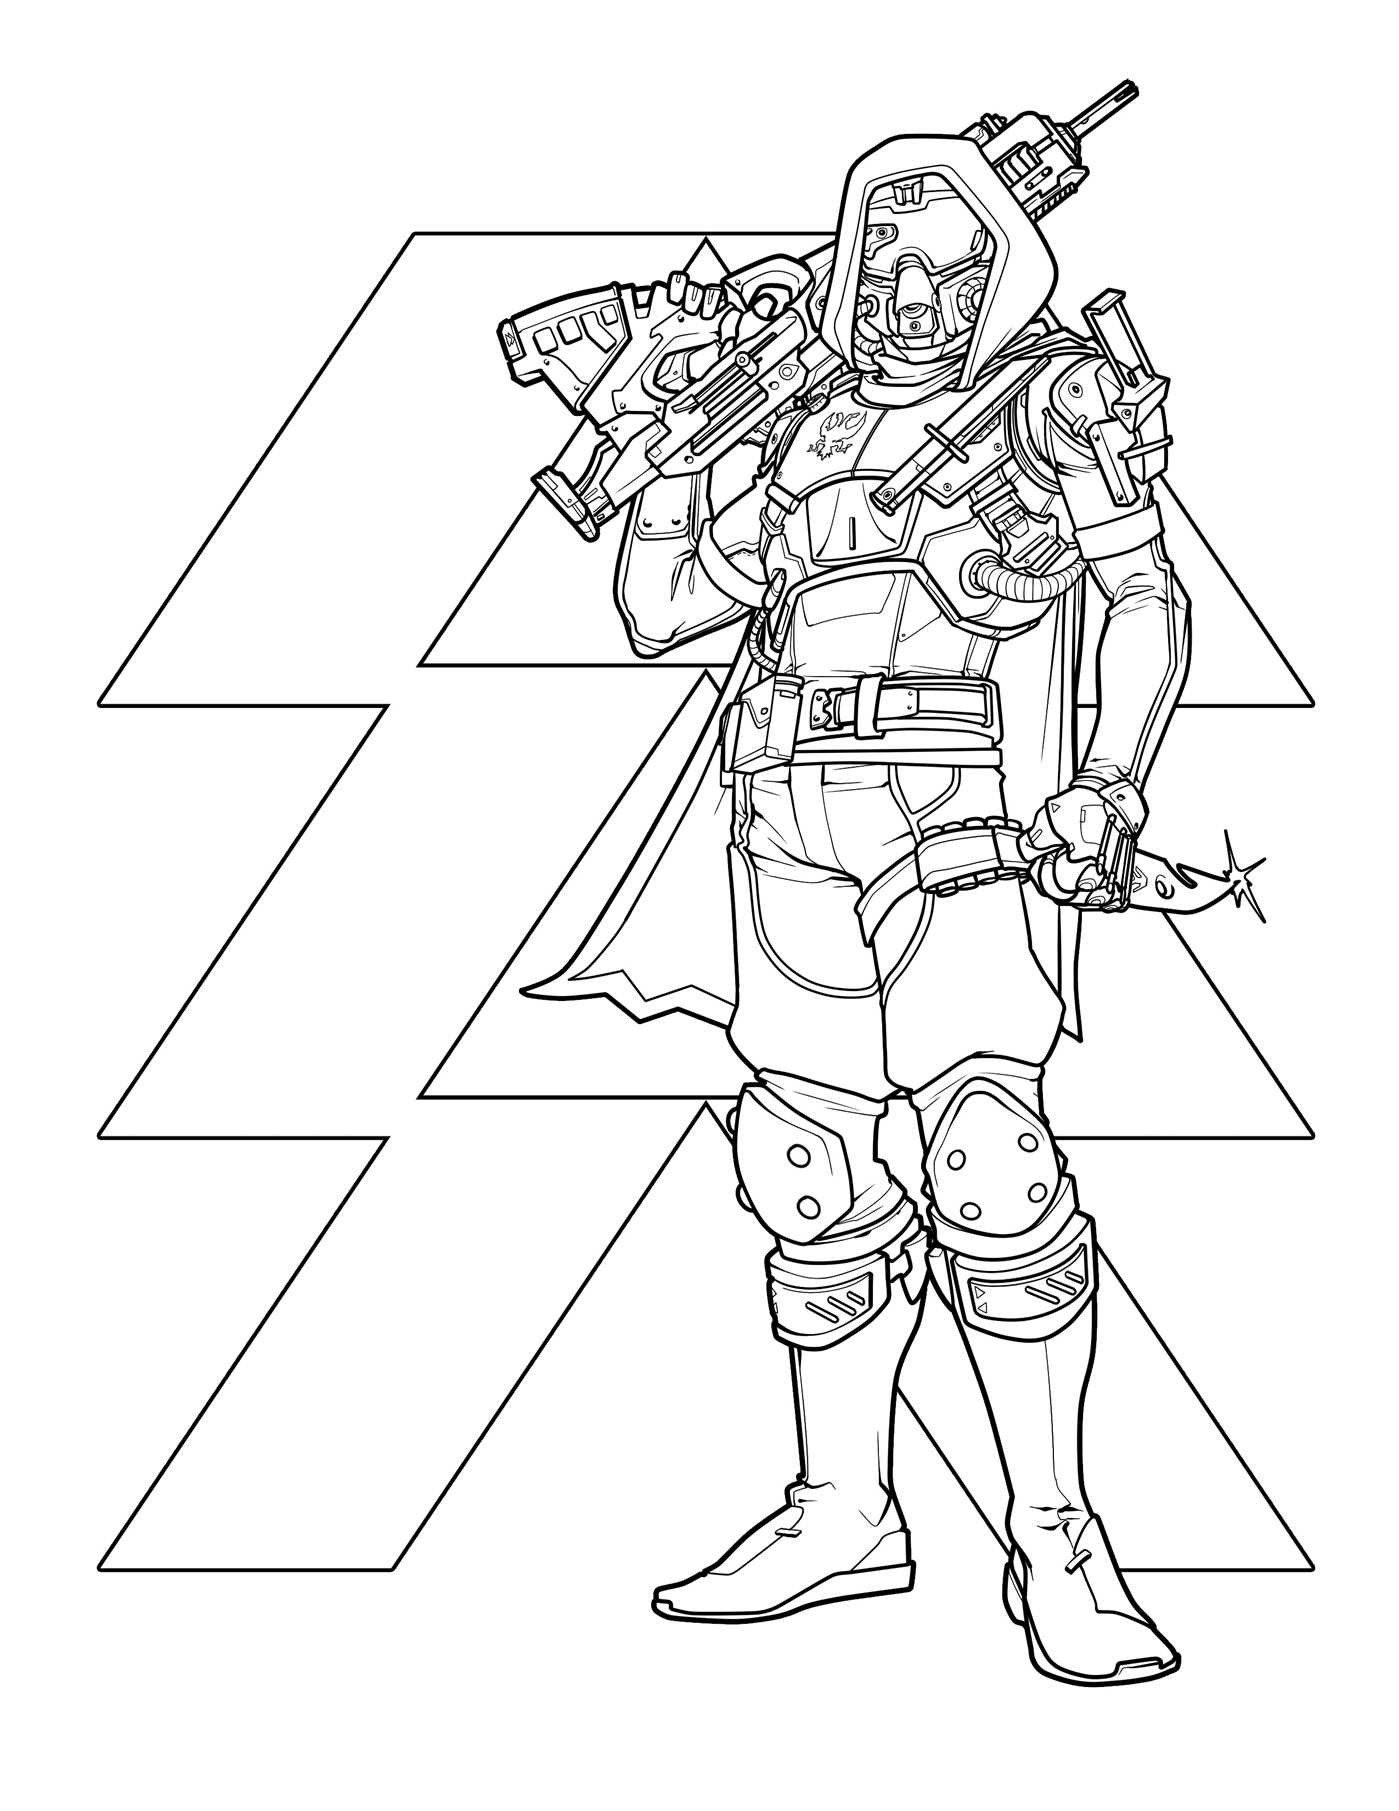 destiny characters hunter coloring pages - photo#7